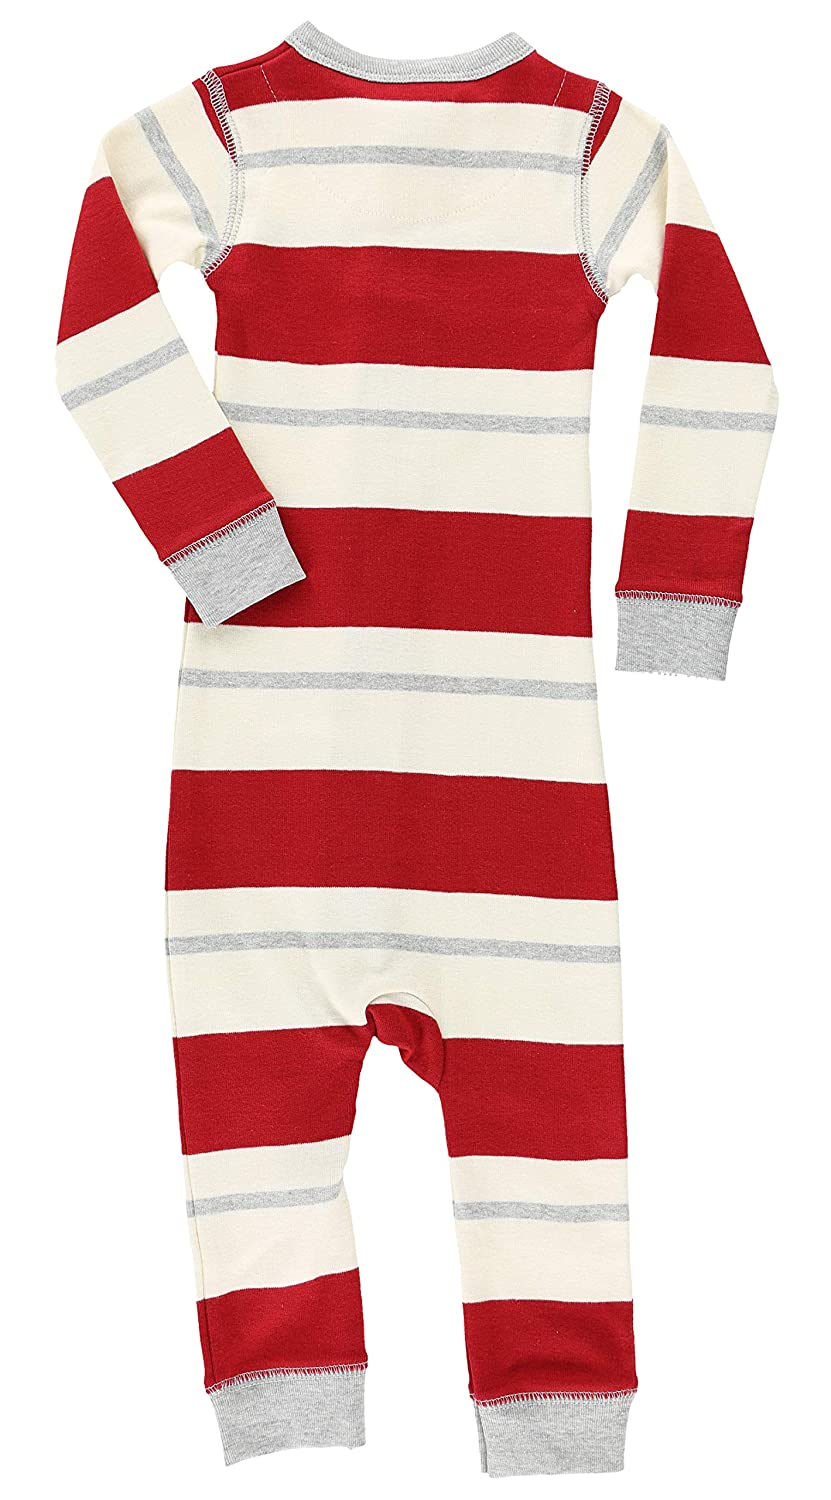 Family Matching Christmas Pajamas by LazyOne Country Stripe Festive Holiday PJs